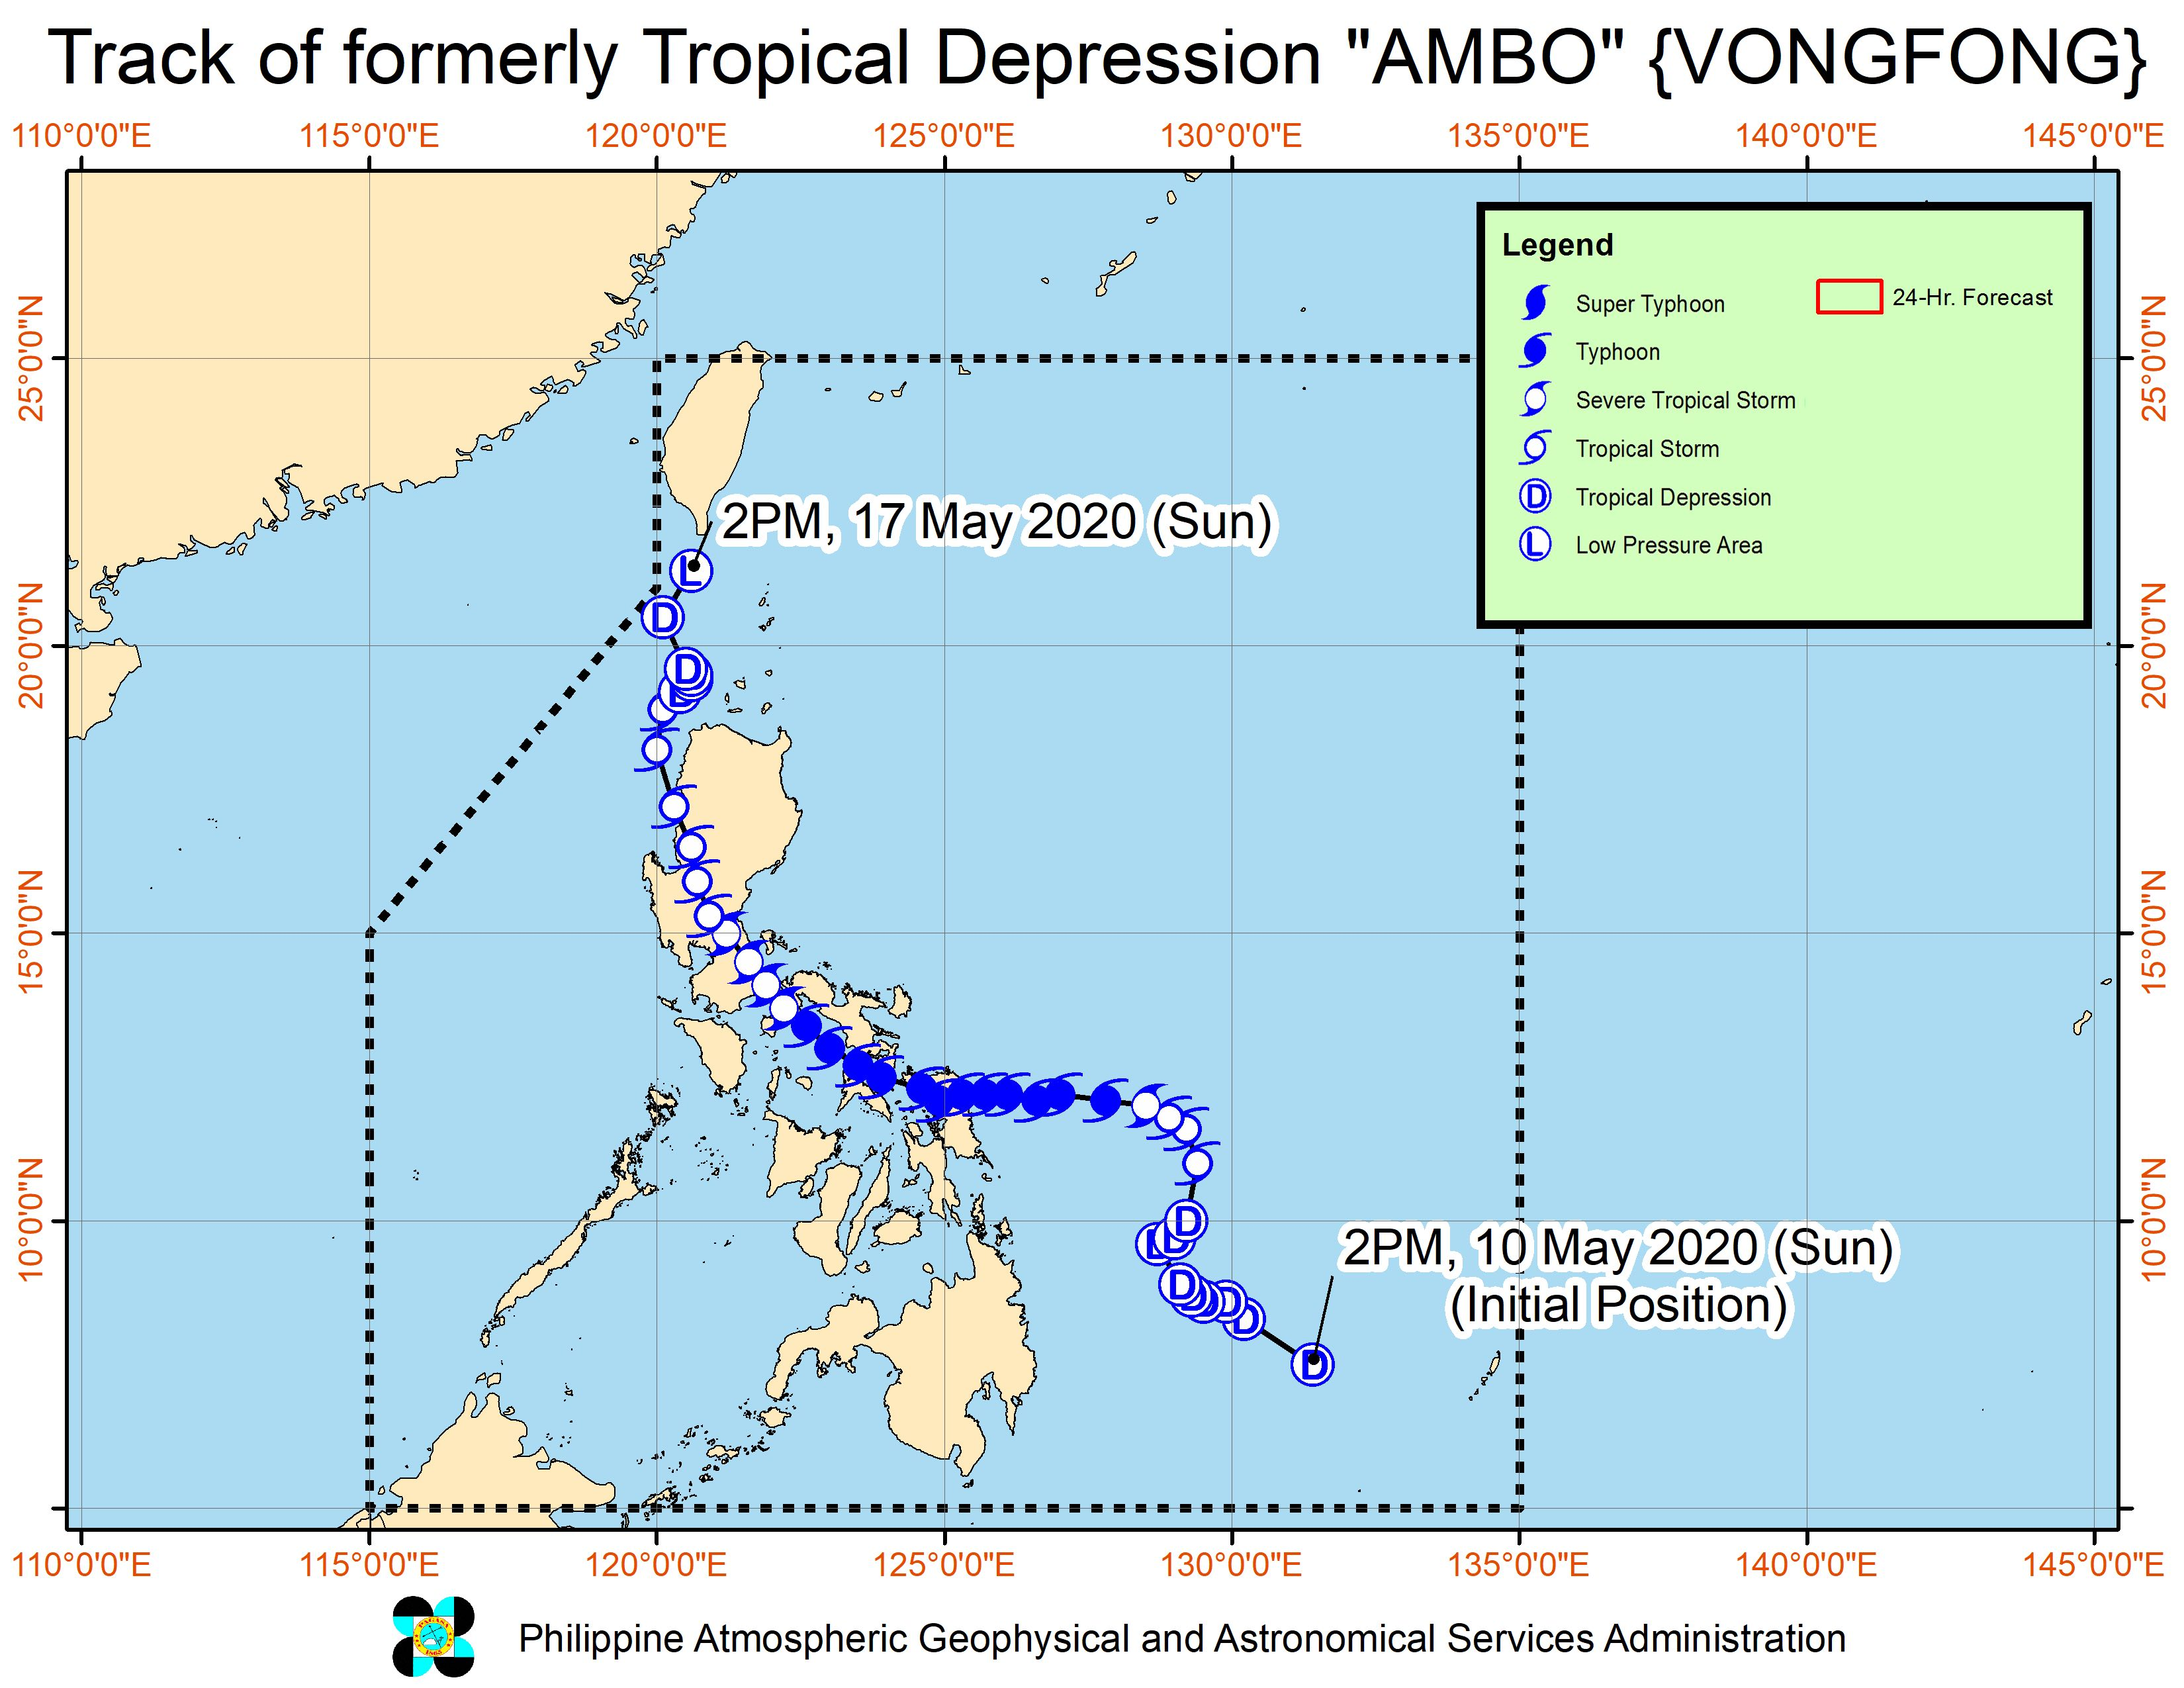 Forecast track of the low pressure area which used to be Ambo (Vongfong), as of May 17, 2020, 5 pm. Image from PAGASA